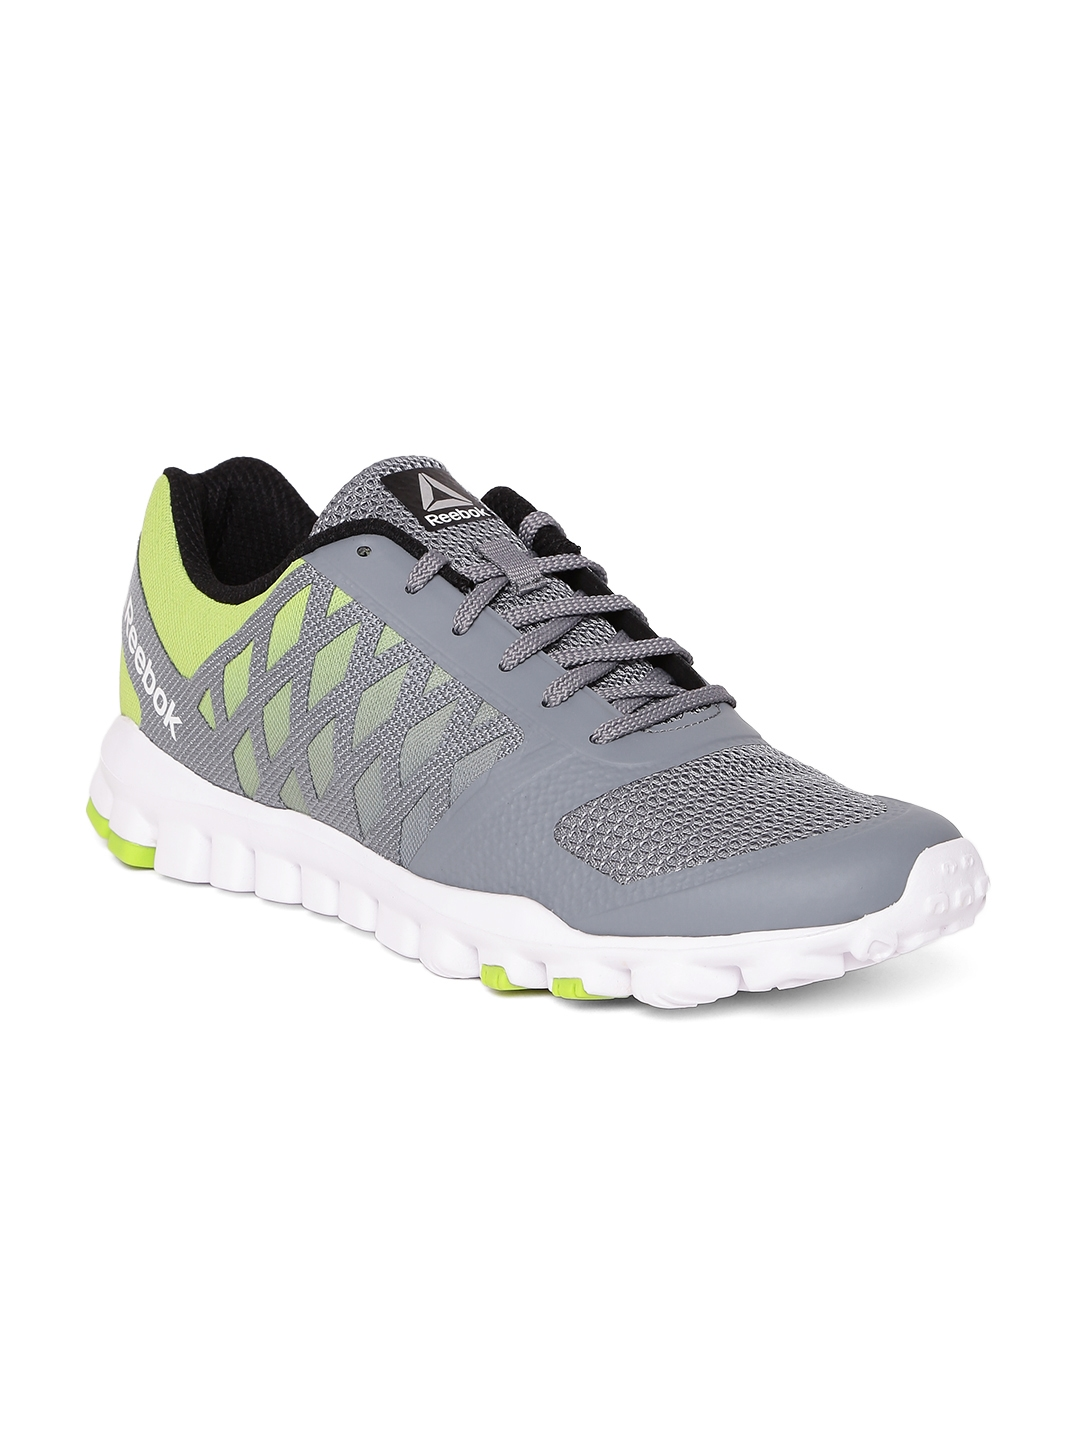 d7a2f2654e698 Buy Reebok Men Grey   Lime Green Realflex Training Shoes - Sports ...